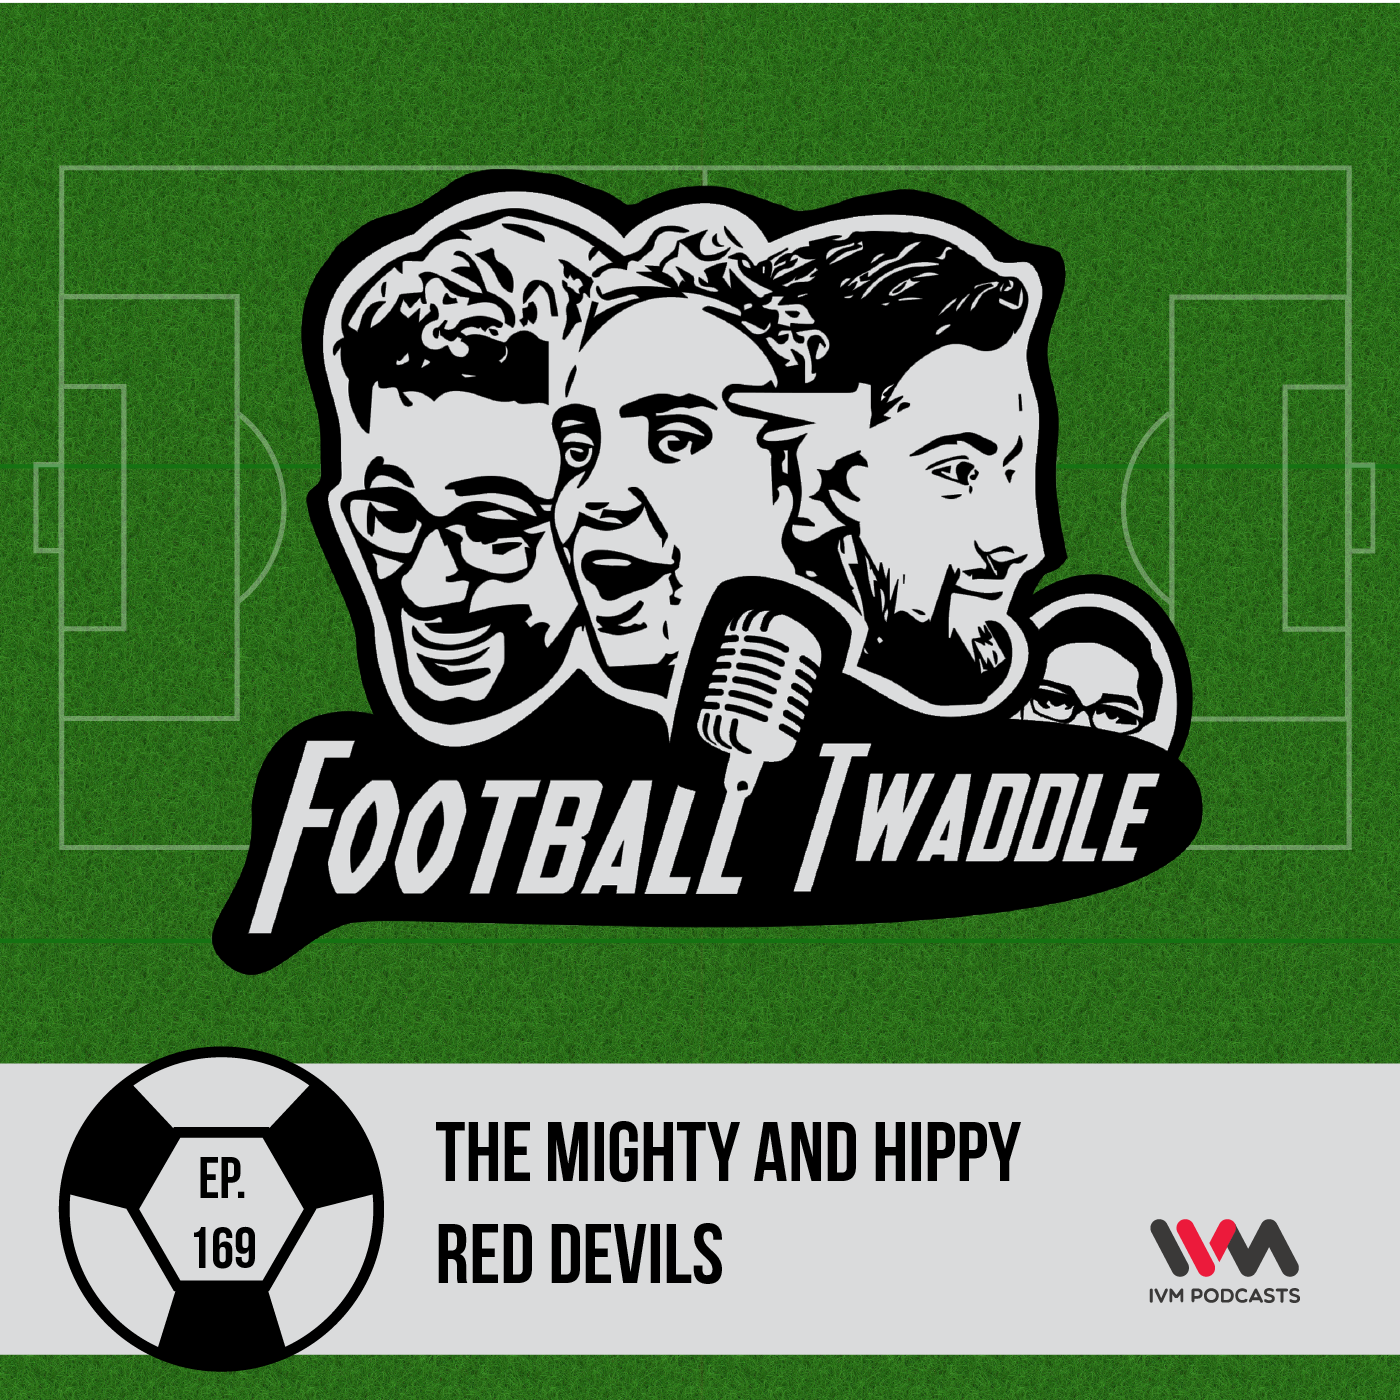 The Mighty and Hippy Red Devils